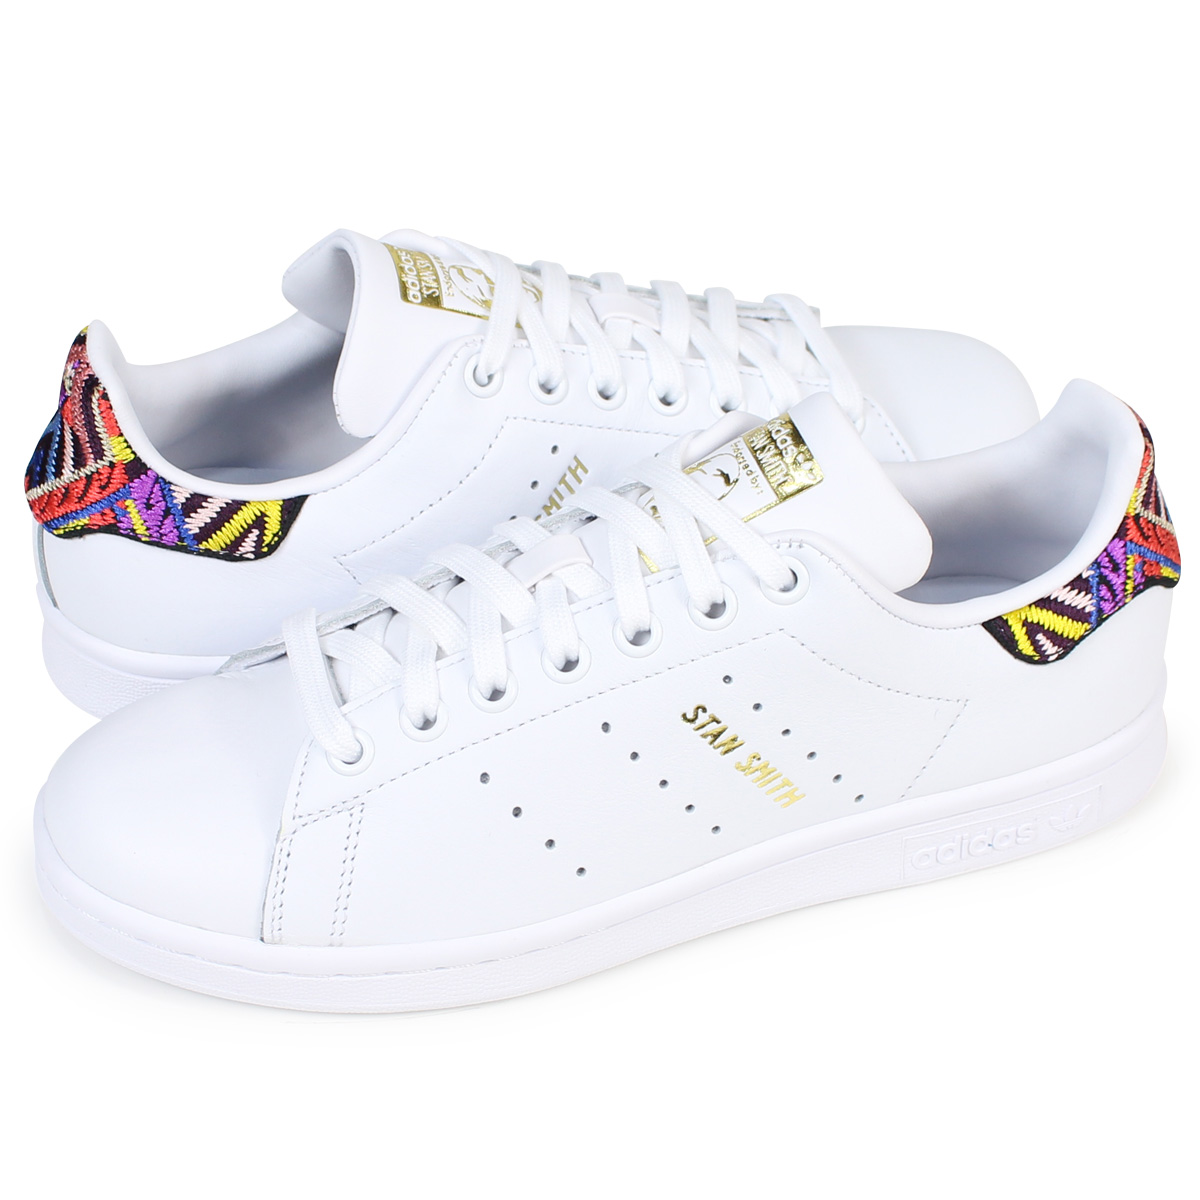 f2542e2263e2d adidas originals STAN SMITH W Adidas Stan Smith Lady's sneakers CQ2814  shoes white [load planned Shinnyu load in reservation product 12/21  containing] ...